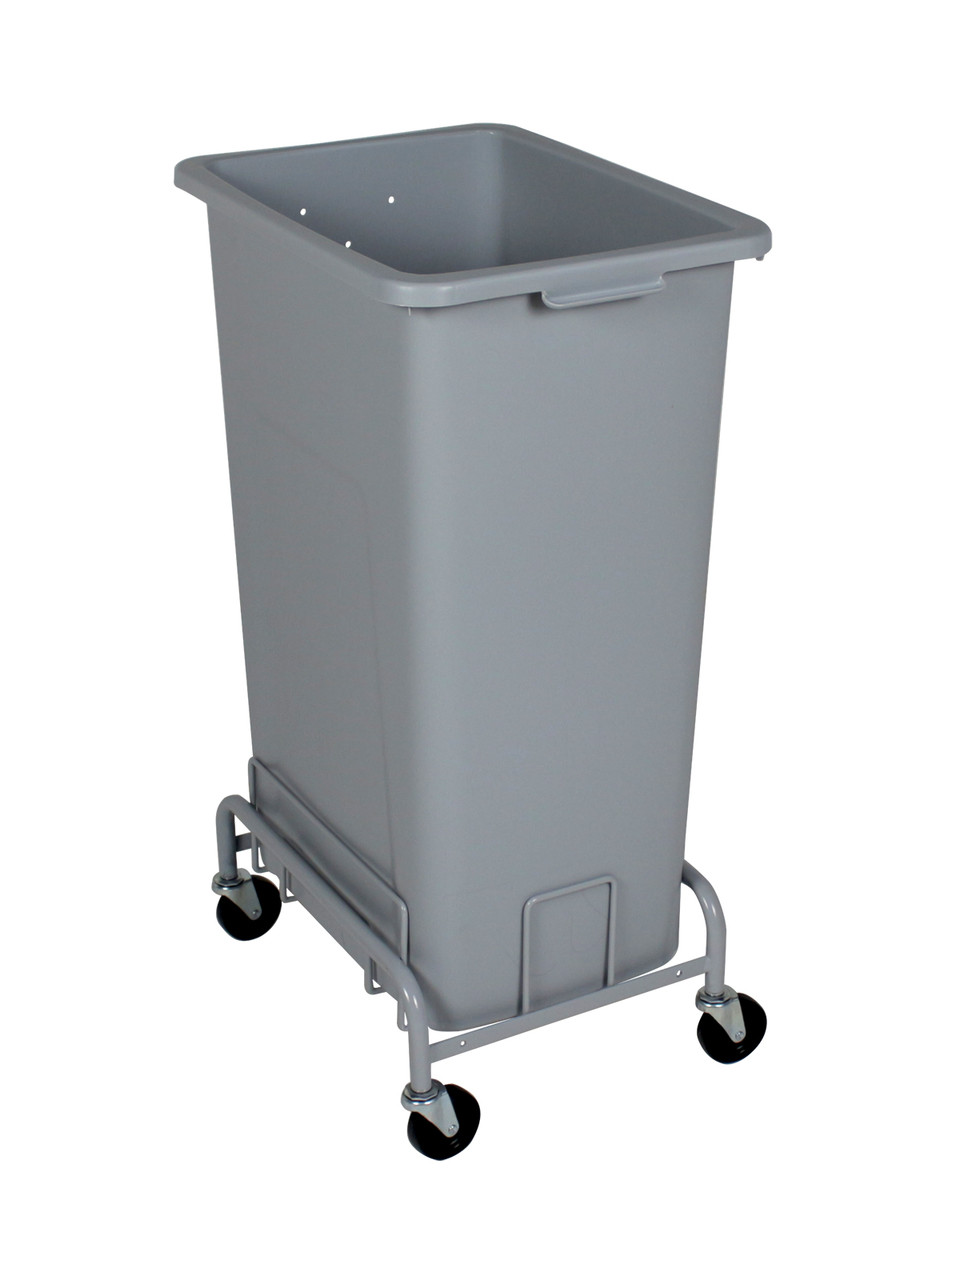 32 Gallon Plastic Extra Large Trash Can with Wheels (4 Color Choices)